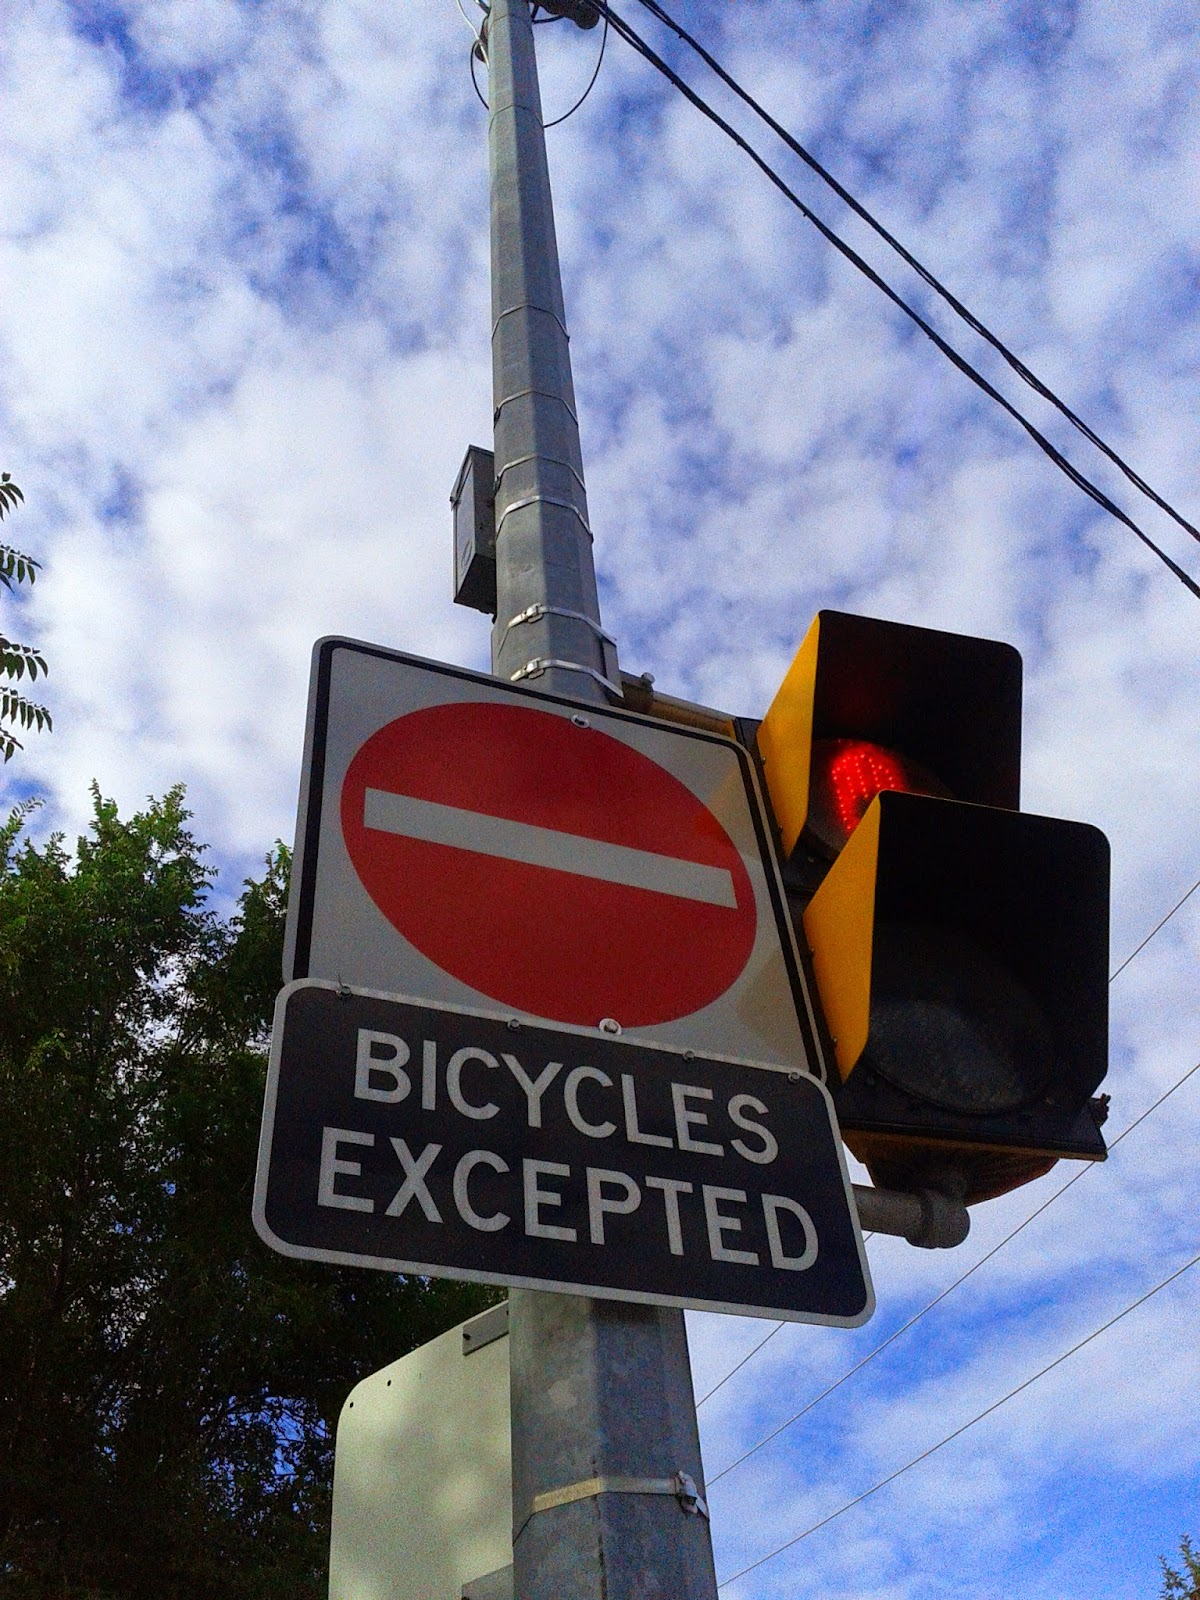 Stock photo: No Entry Bicycles Exccepted sign